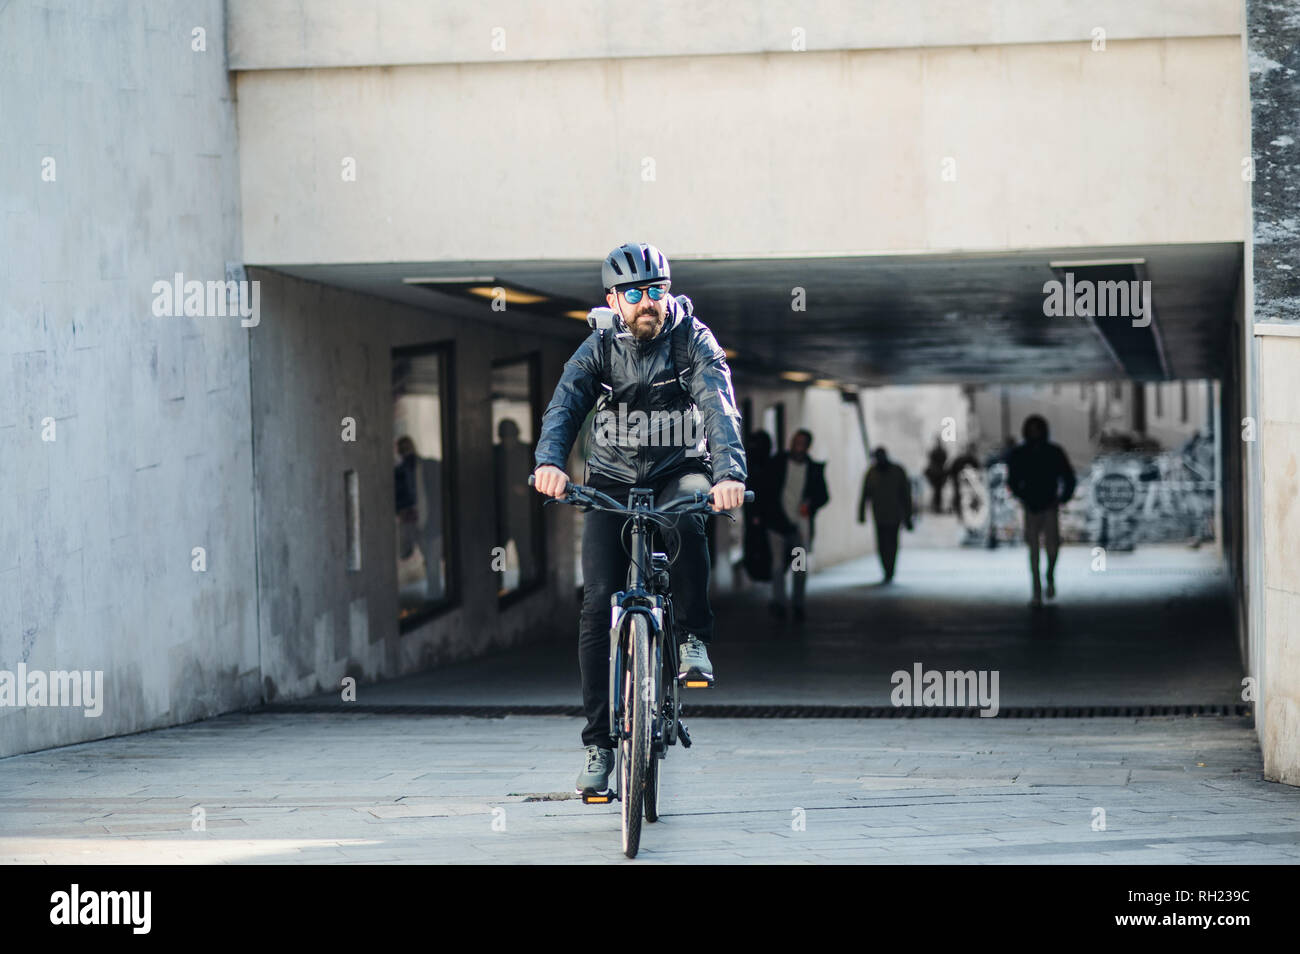 A male bicycle courier cycling in city, delivering packages. Copy space. Stock Photo